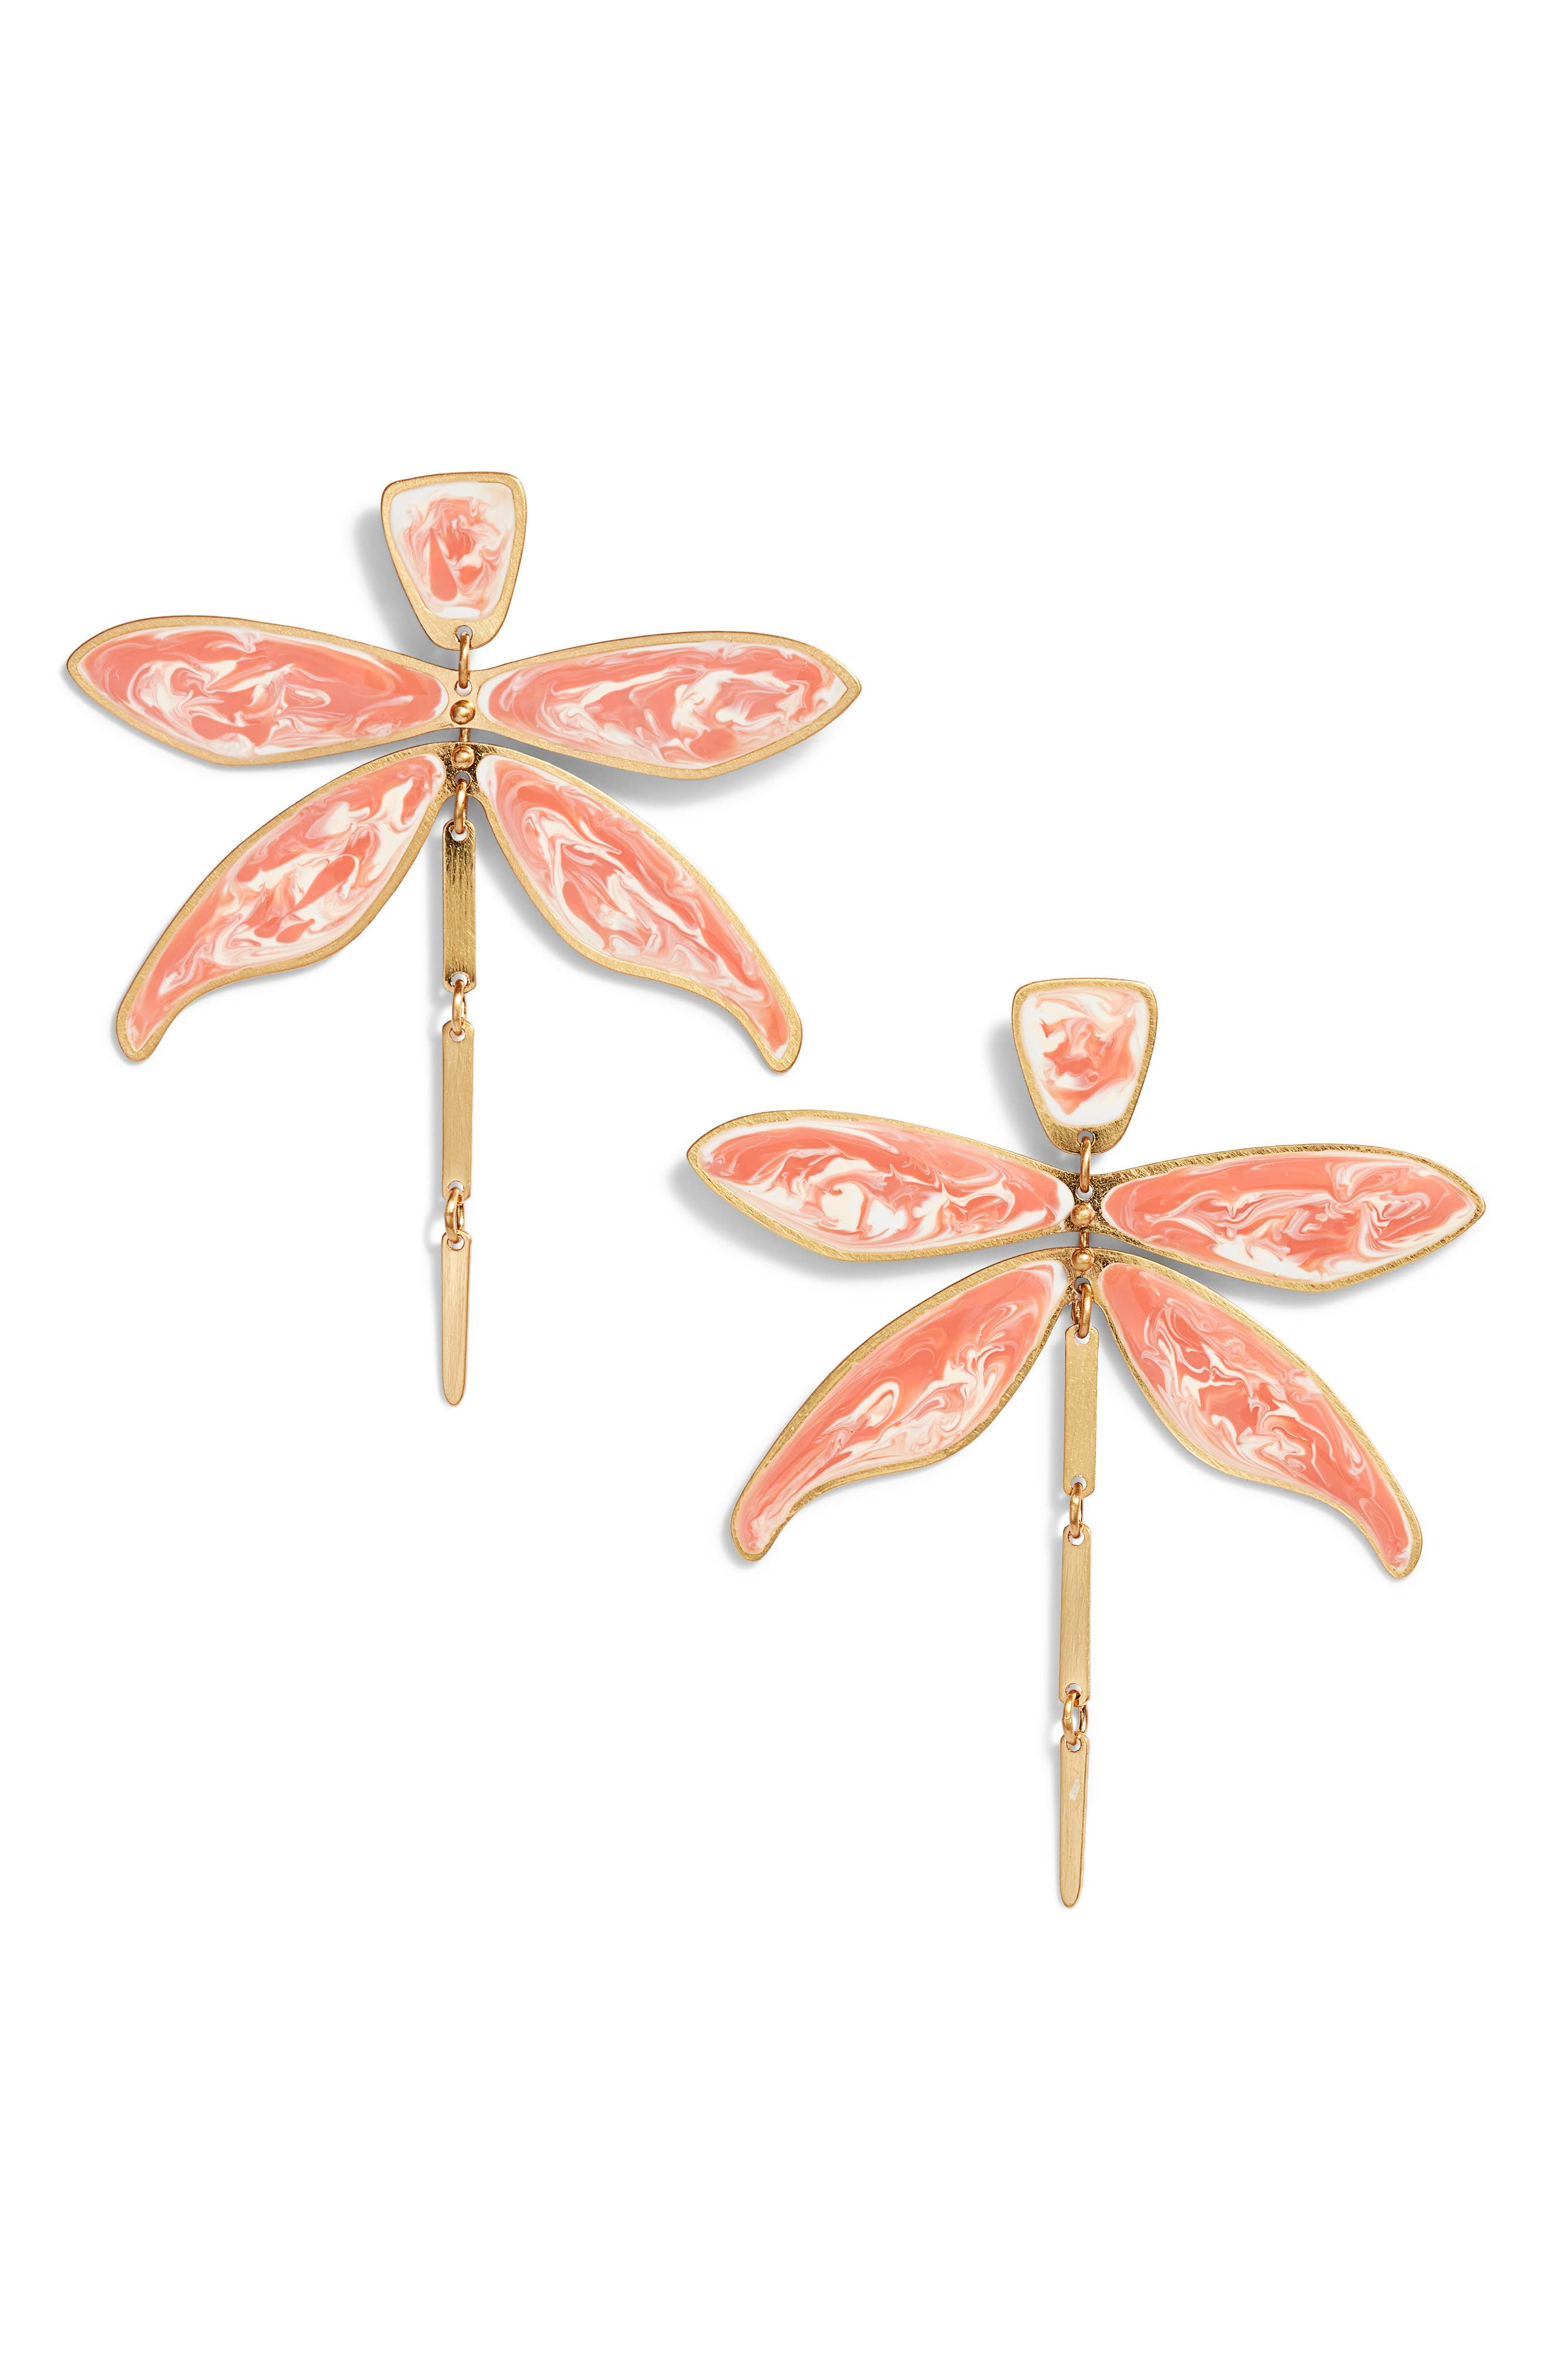 Alternate Image 1 Selected - Tory Burch Articulated Dragonfly Earrings